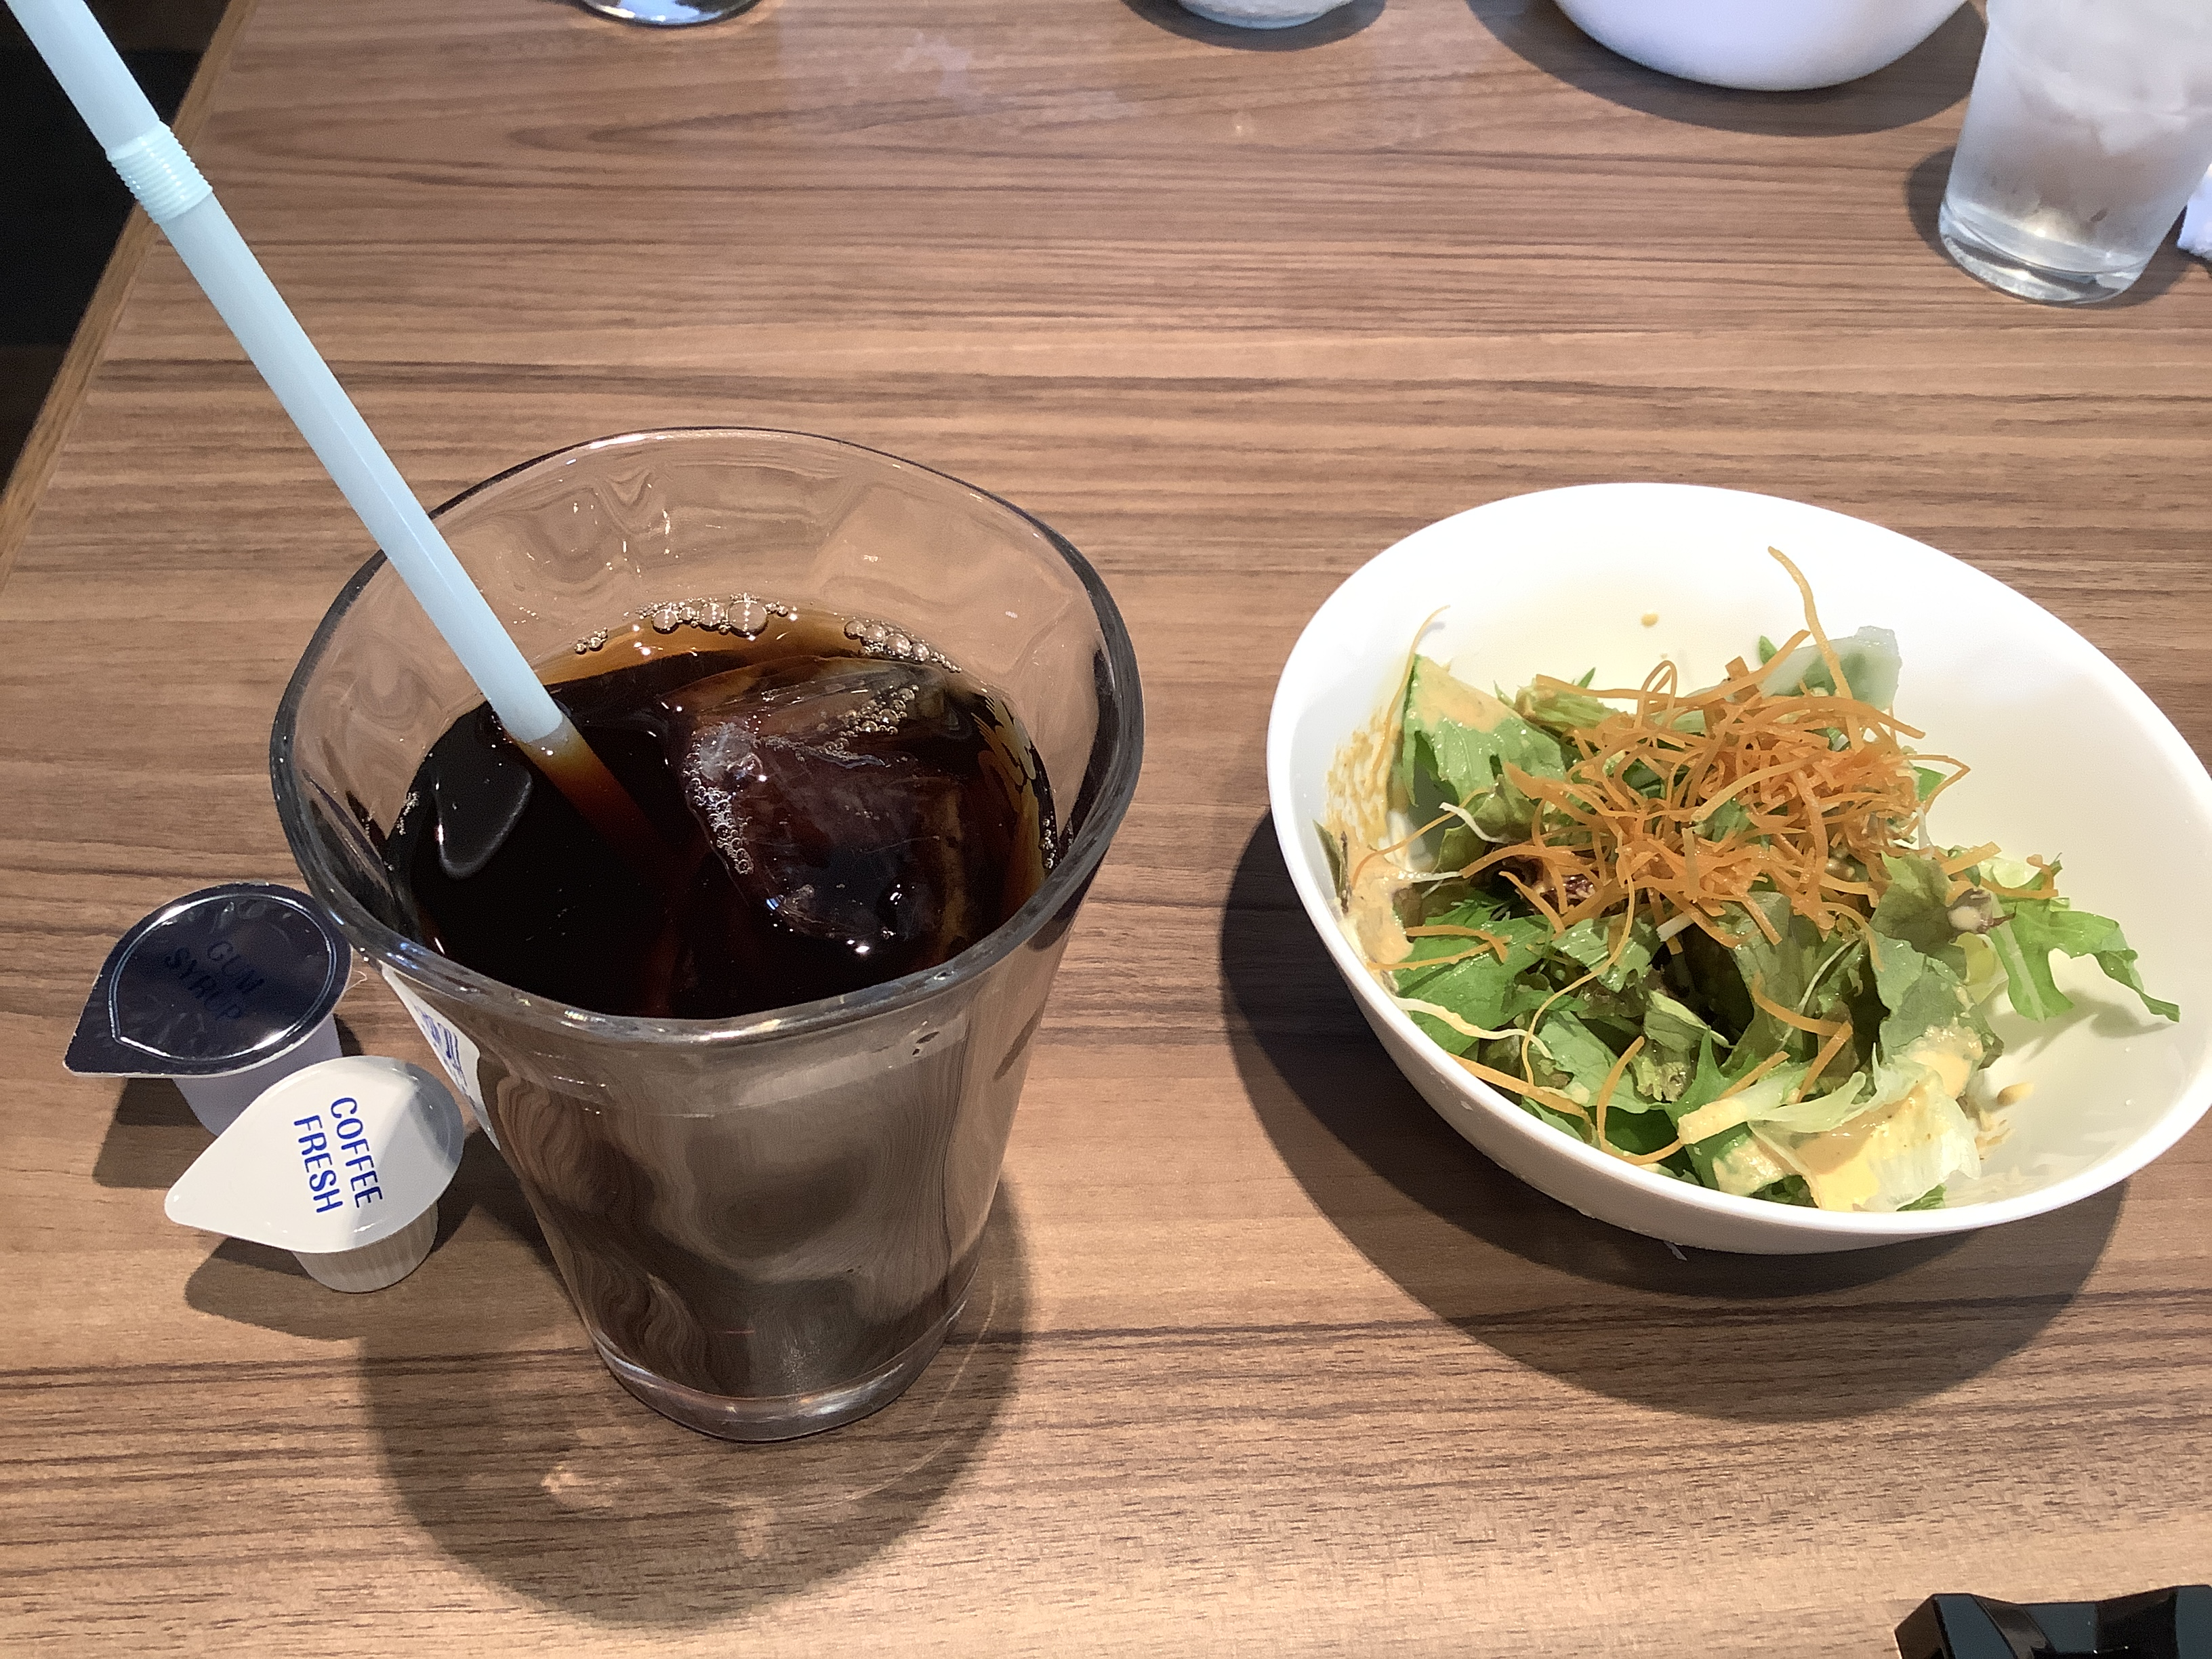 Iced coffee and salad